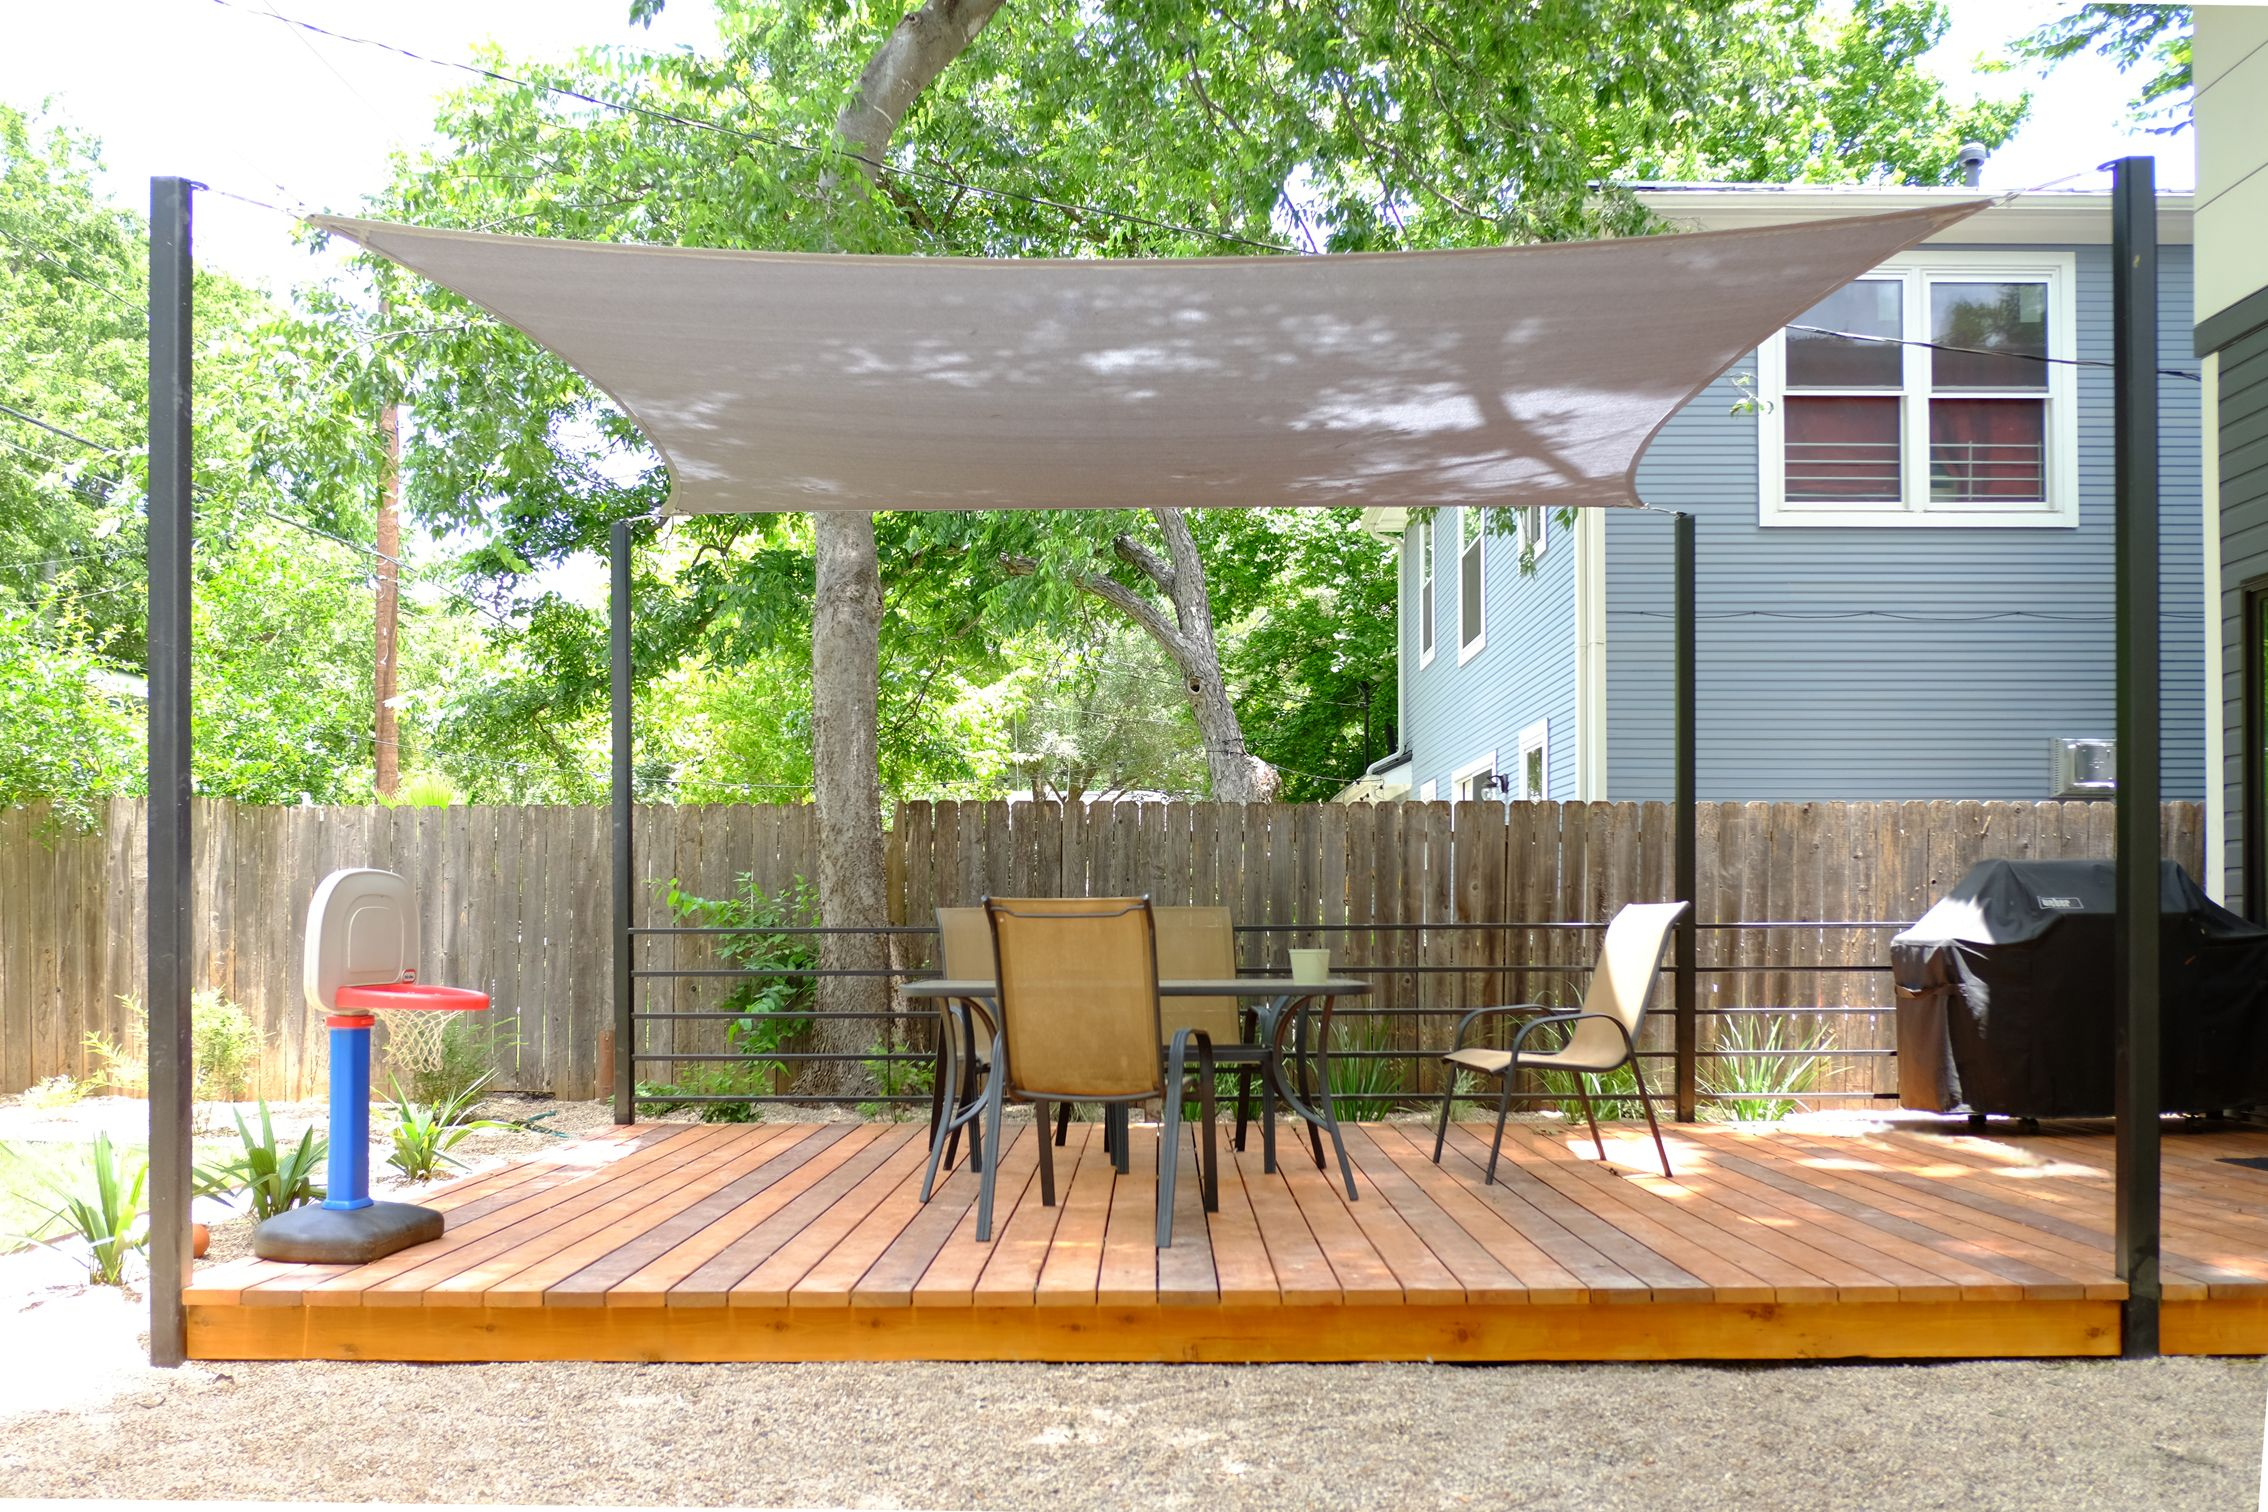 awnings for decks | DIY Retractable Awnings Retractable Awnings | Awning Parts | Salt and Straw | Pinterest | Retractable awning Decking and Patios & awnings for decks | DIY Retractable Awnings Retractable Awnings ...